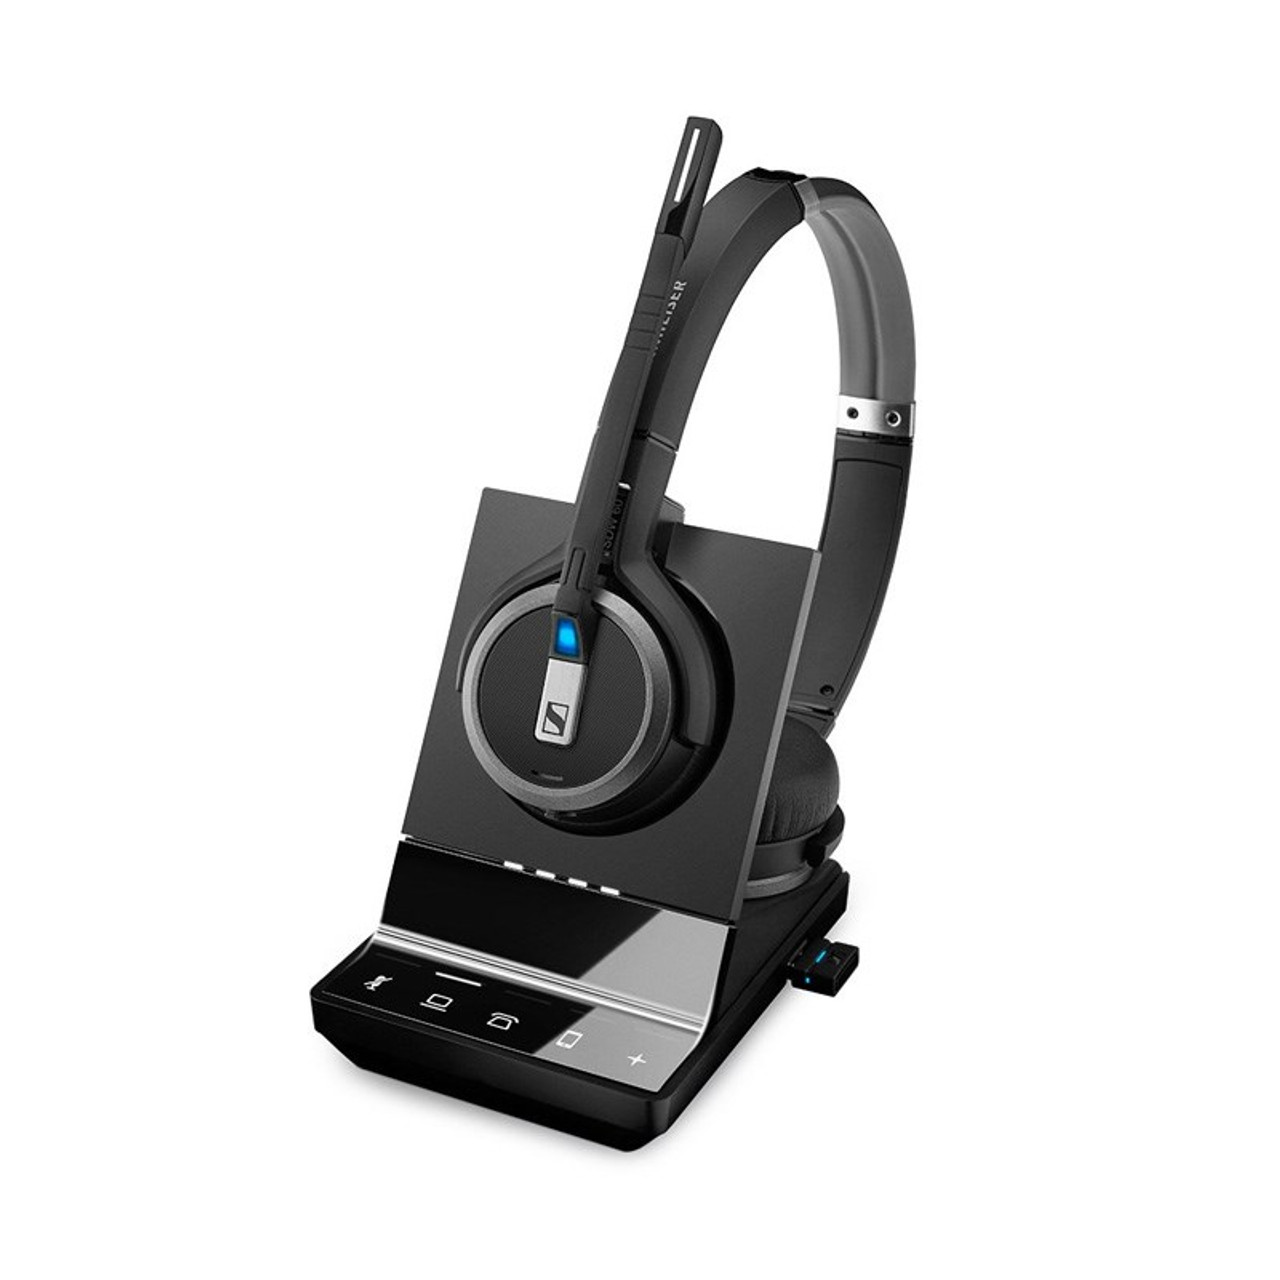 Image for Sennheiser Impact SDW 5066 Stereo Wireless DECT Headset inc Bluetooth CX Computer Superstore